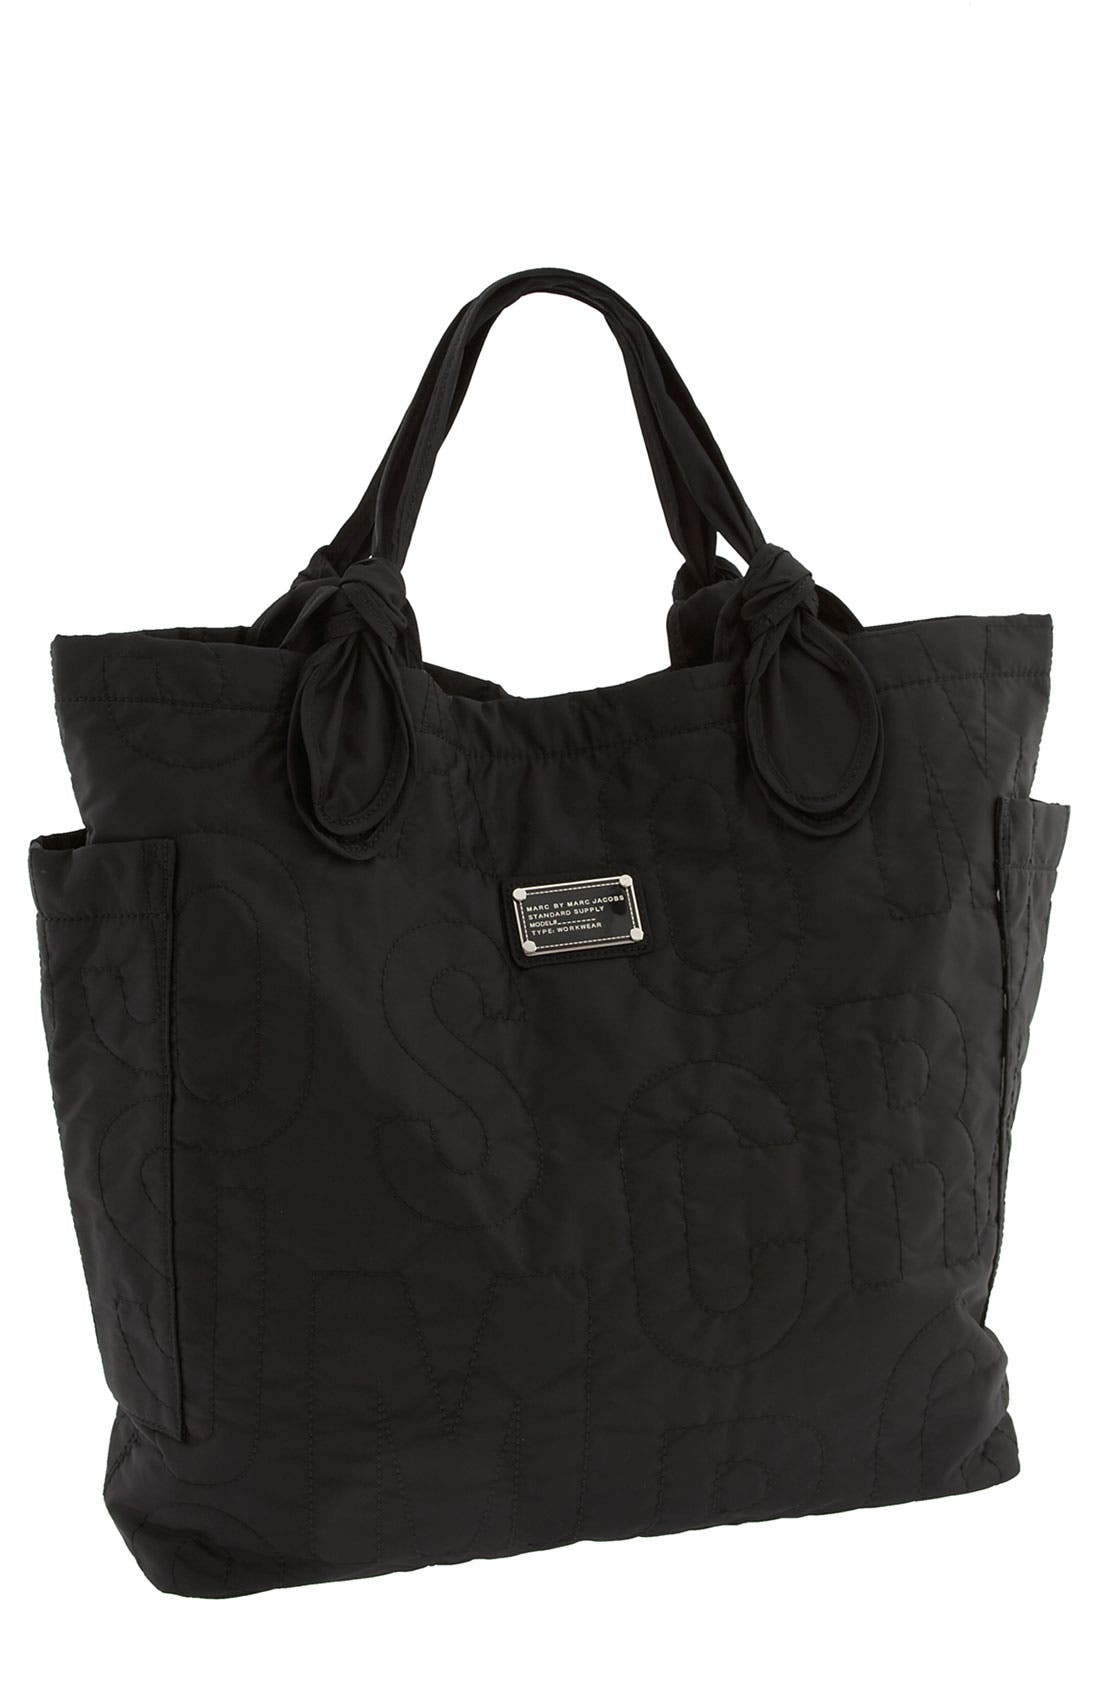 Main Image - MARC BY MARC JACOBS 'Pretty Nylon - Tate' Tote